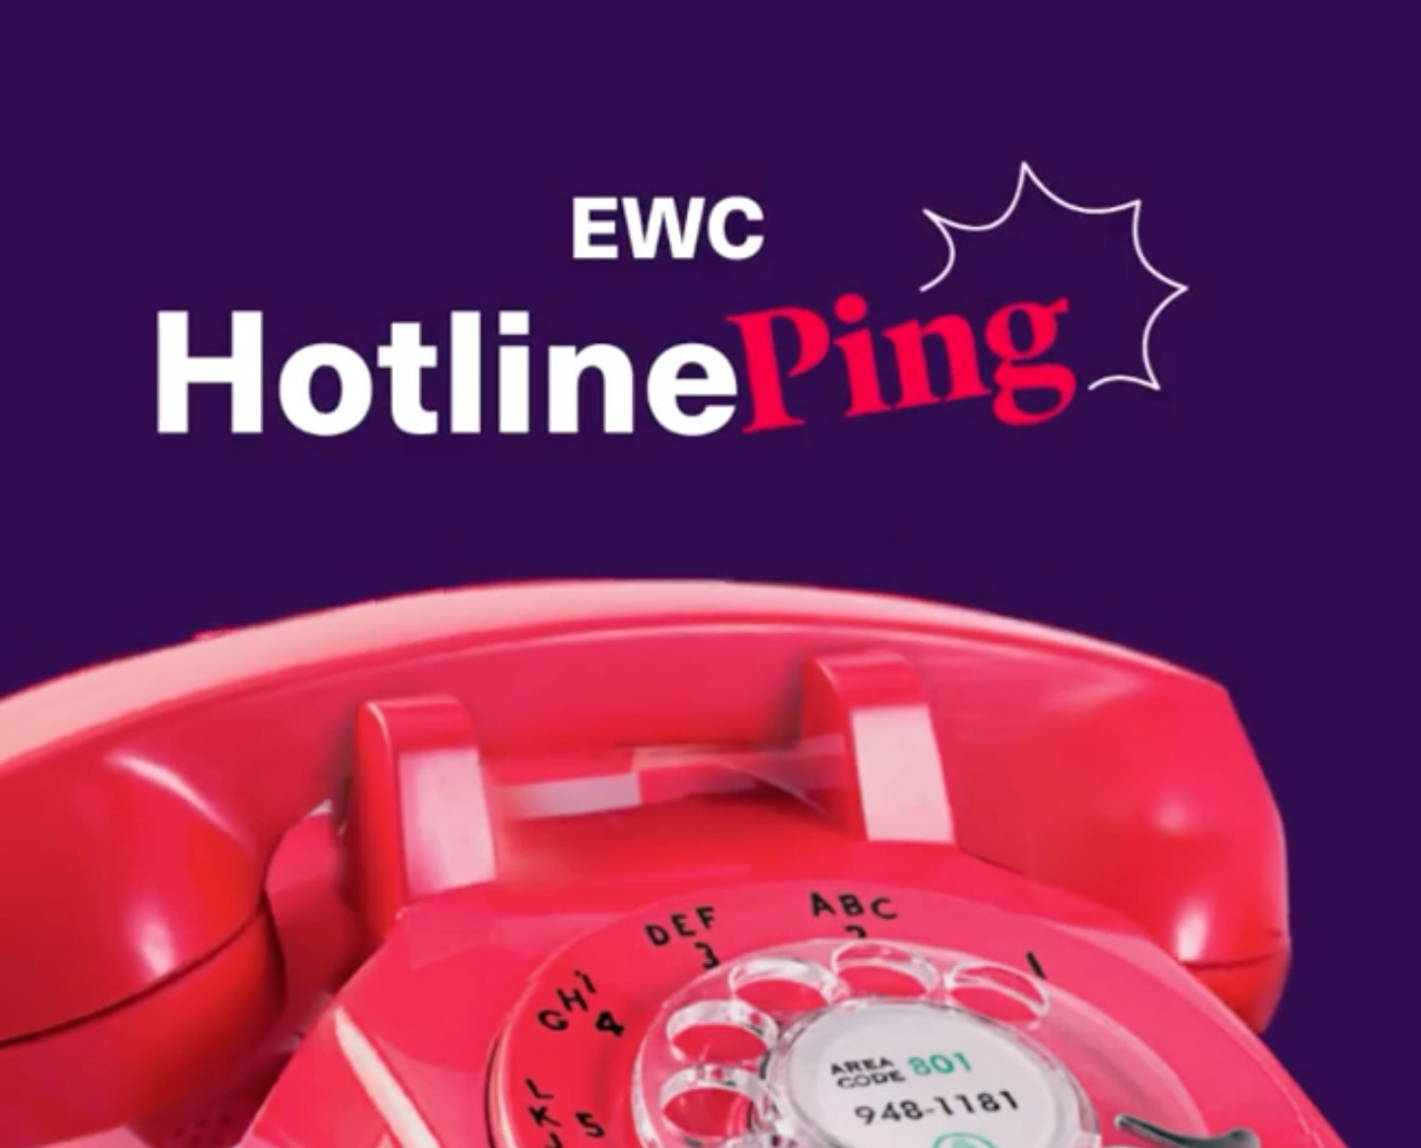 EWC Hotline Ping with pink telephone